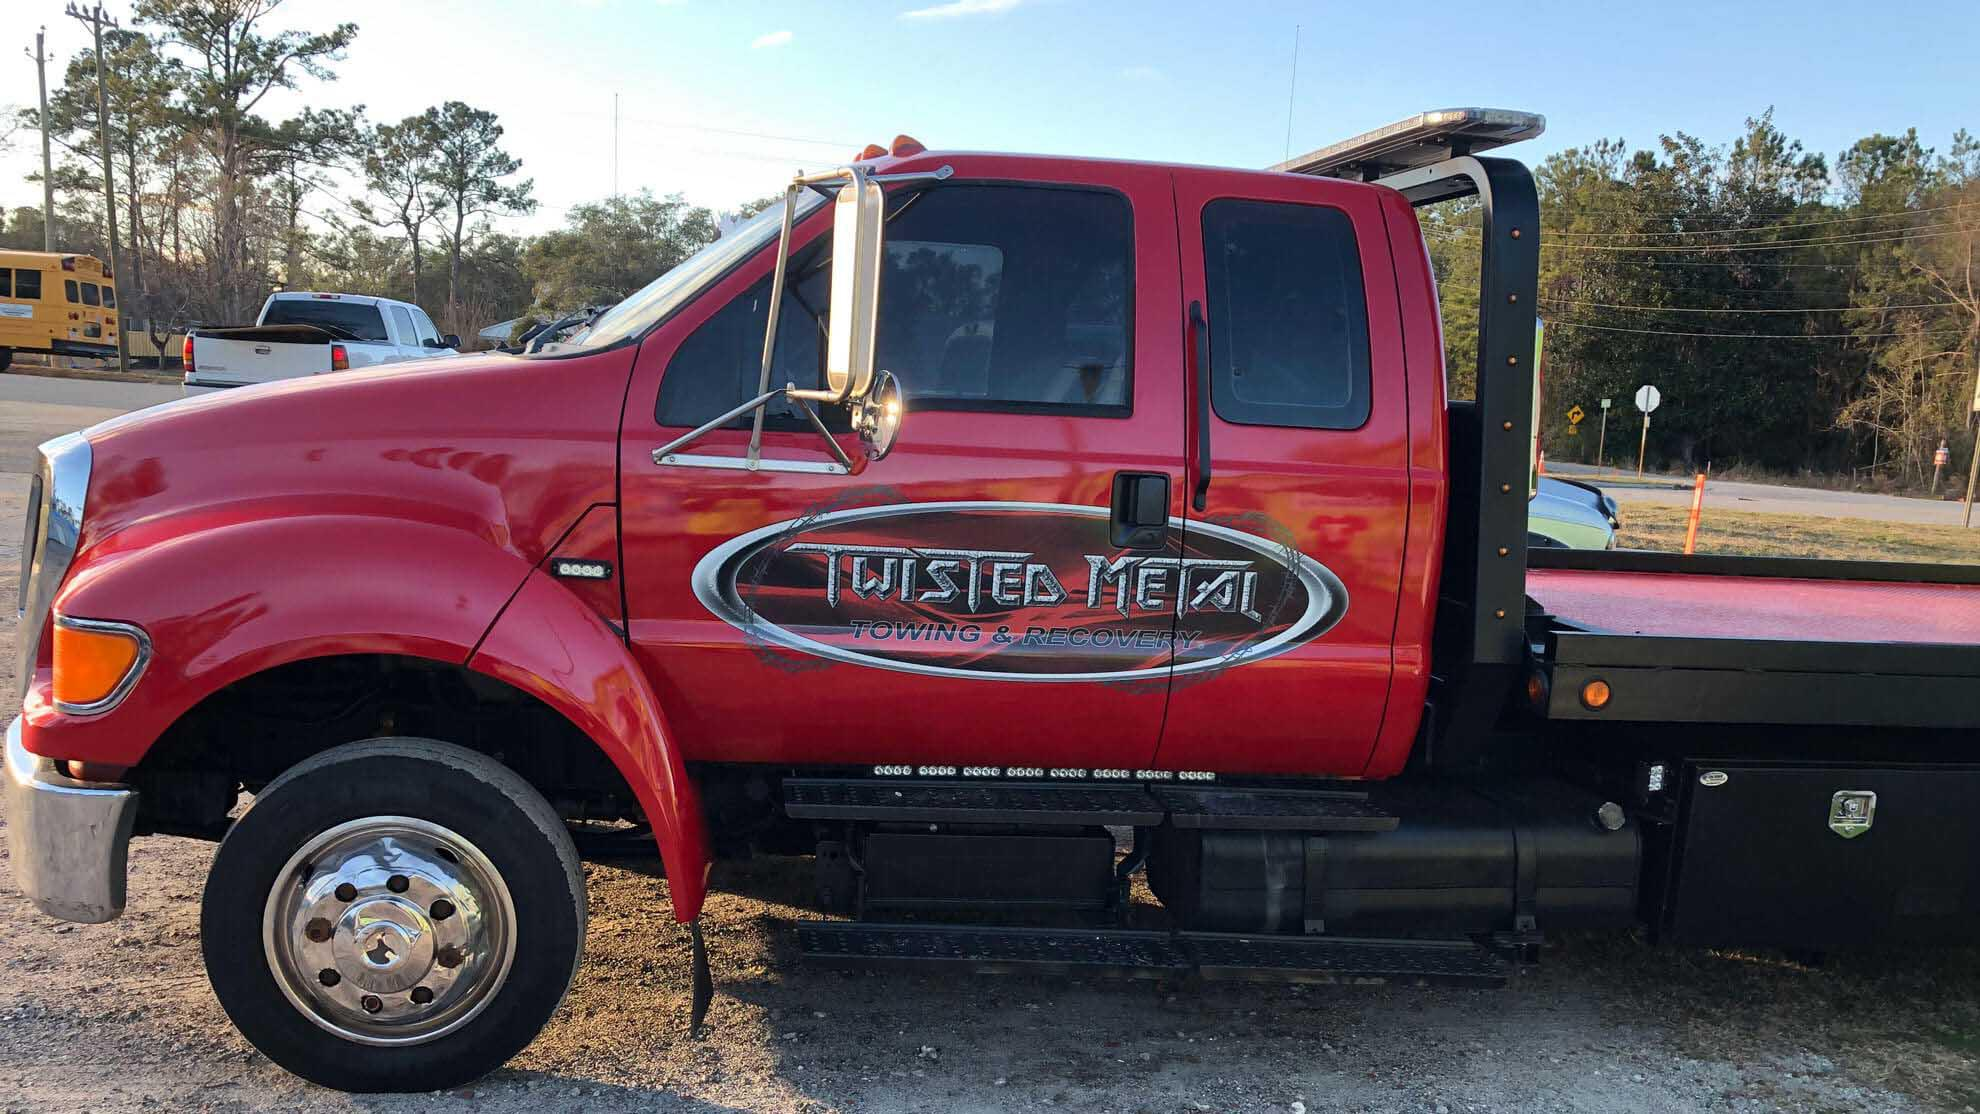 Twisted Metal Towing & Recovery